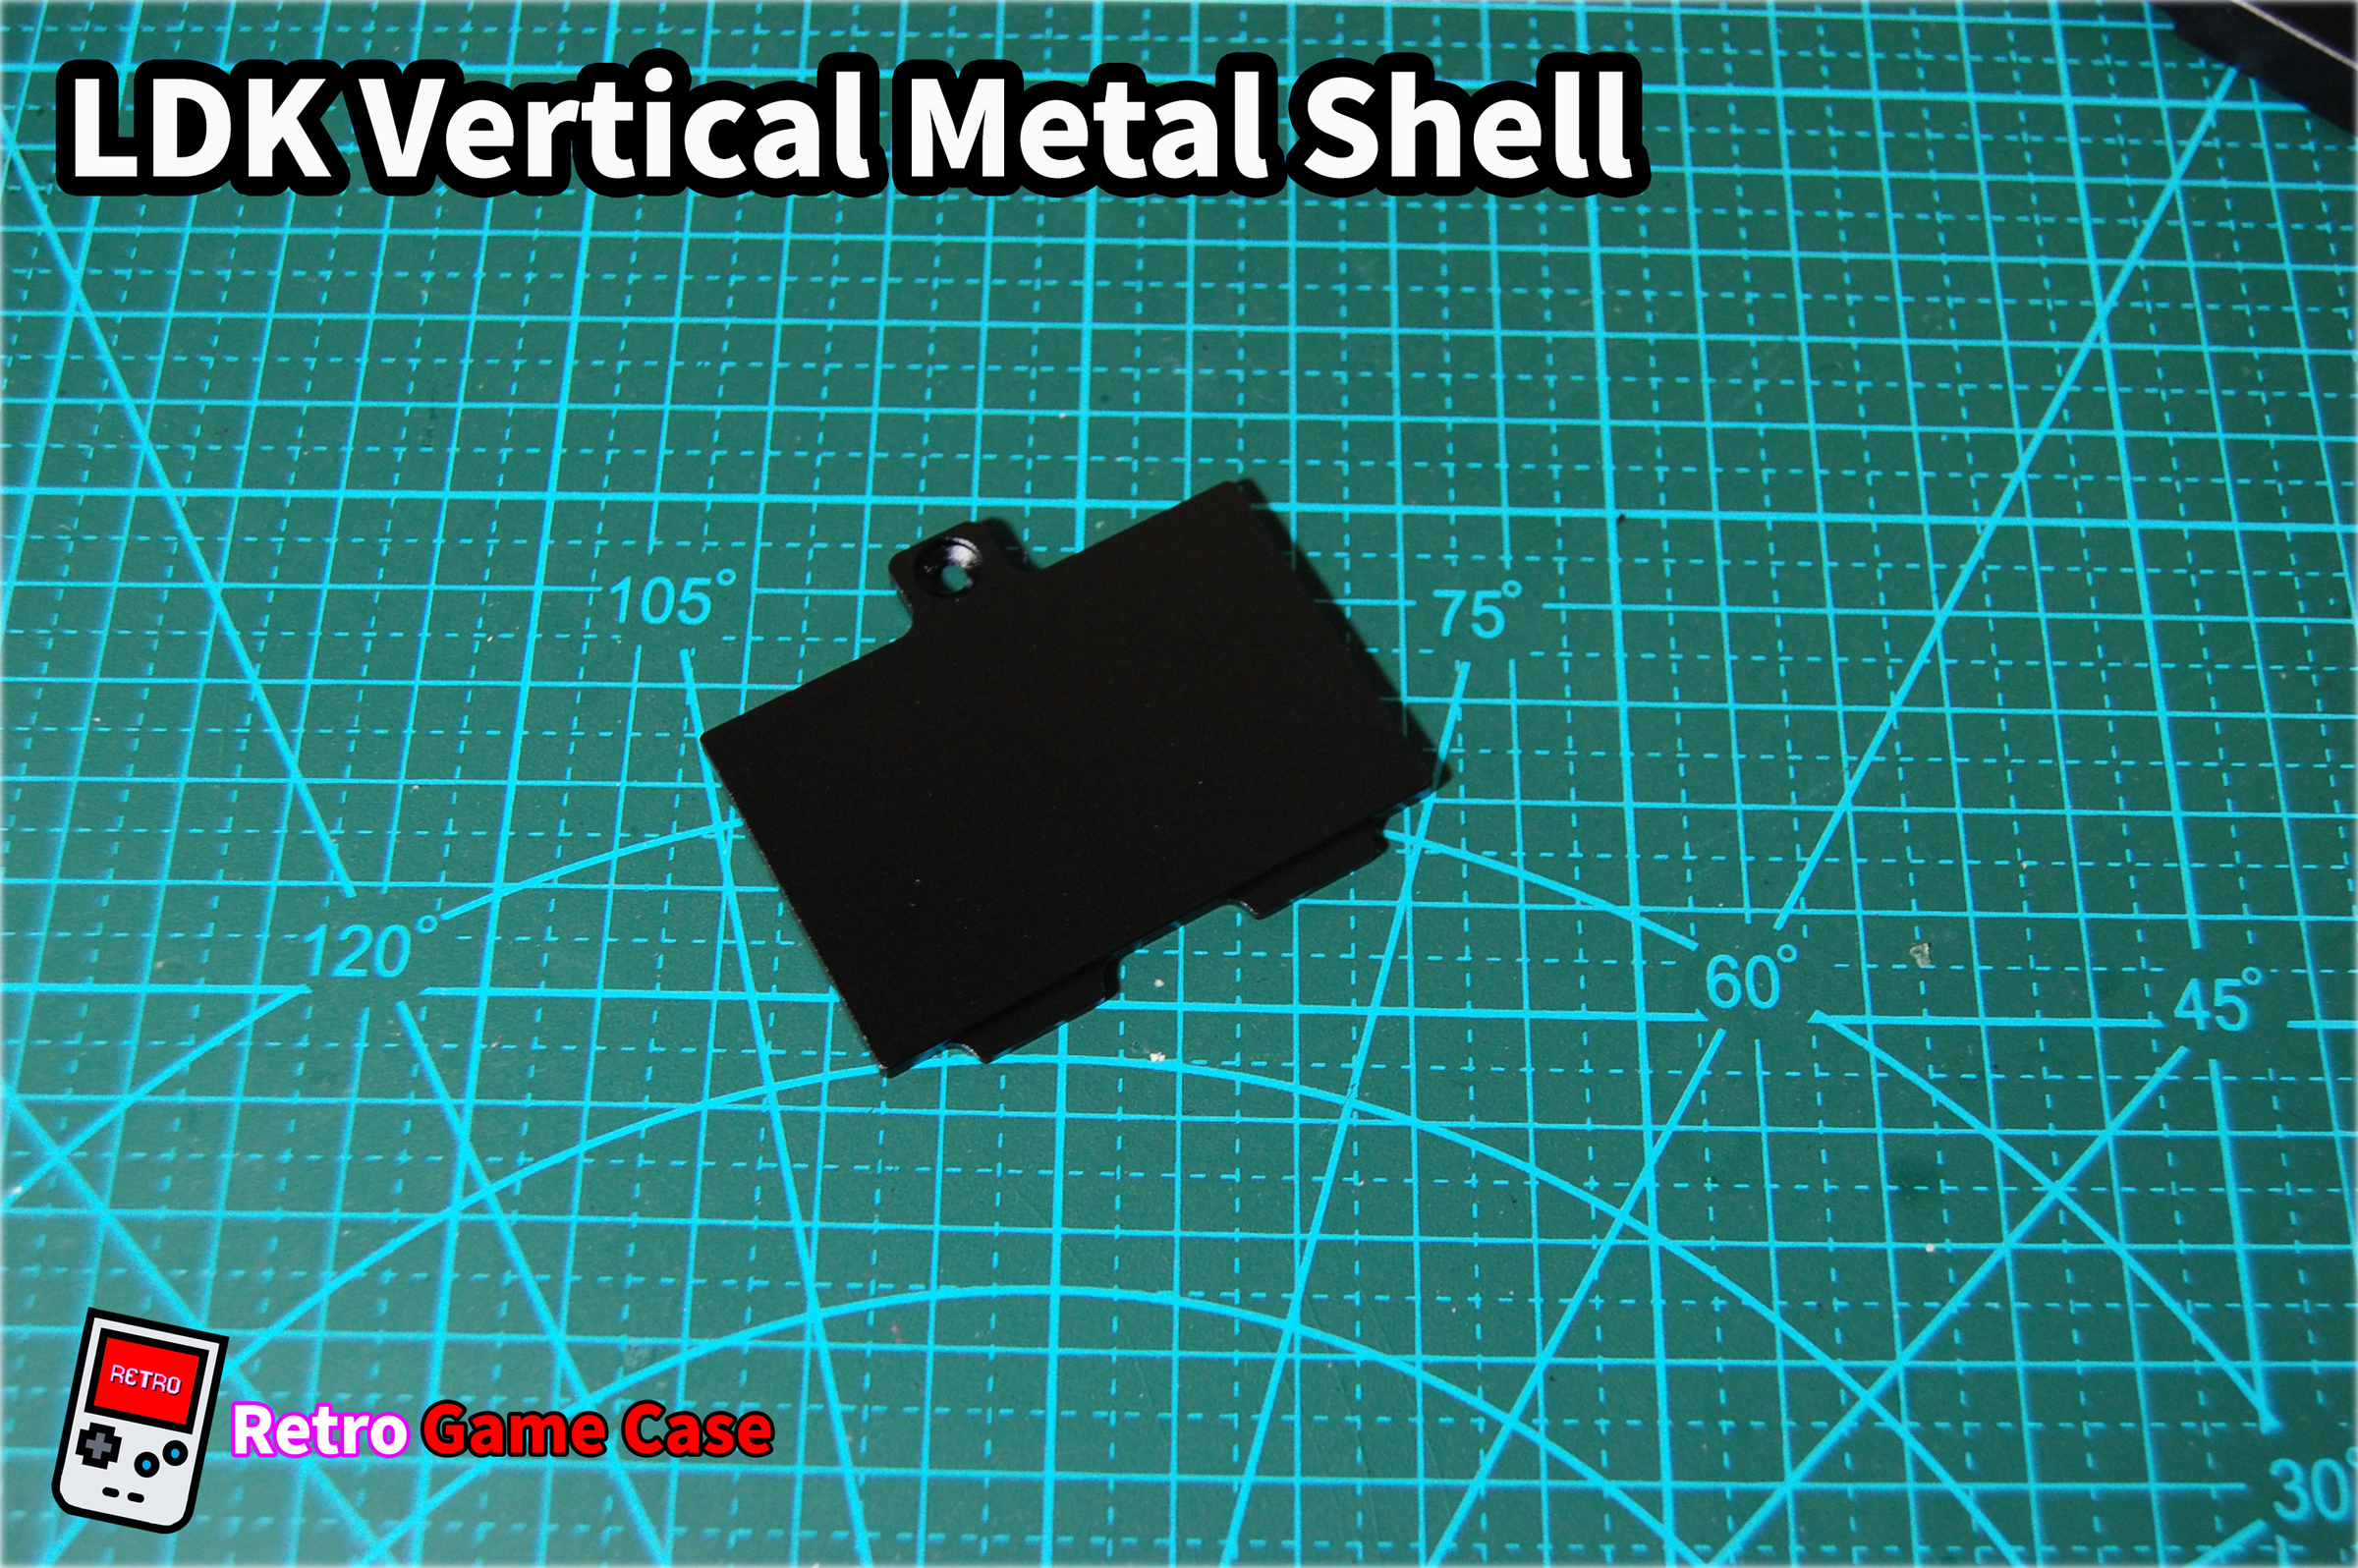 My_retro_game_case_ldk_Metal_shell_case_black_battery_cover.jpg